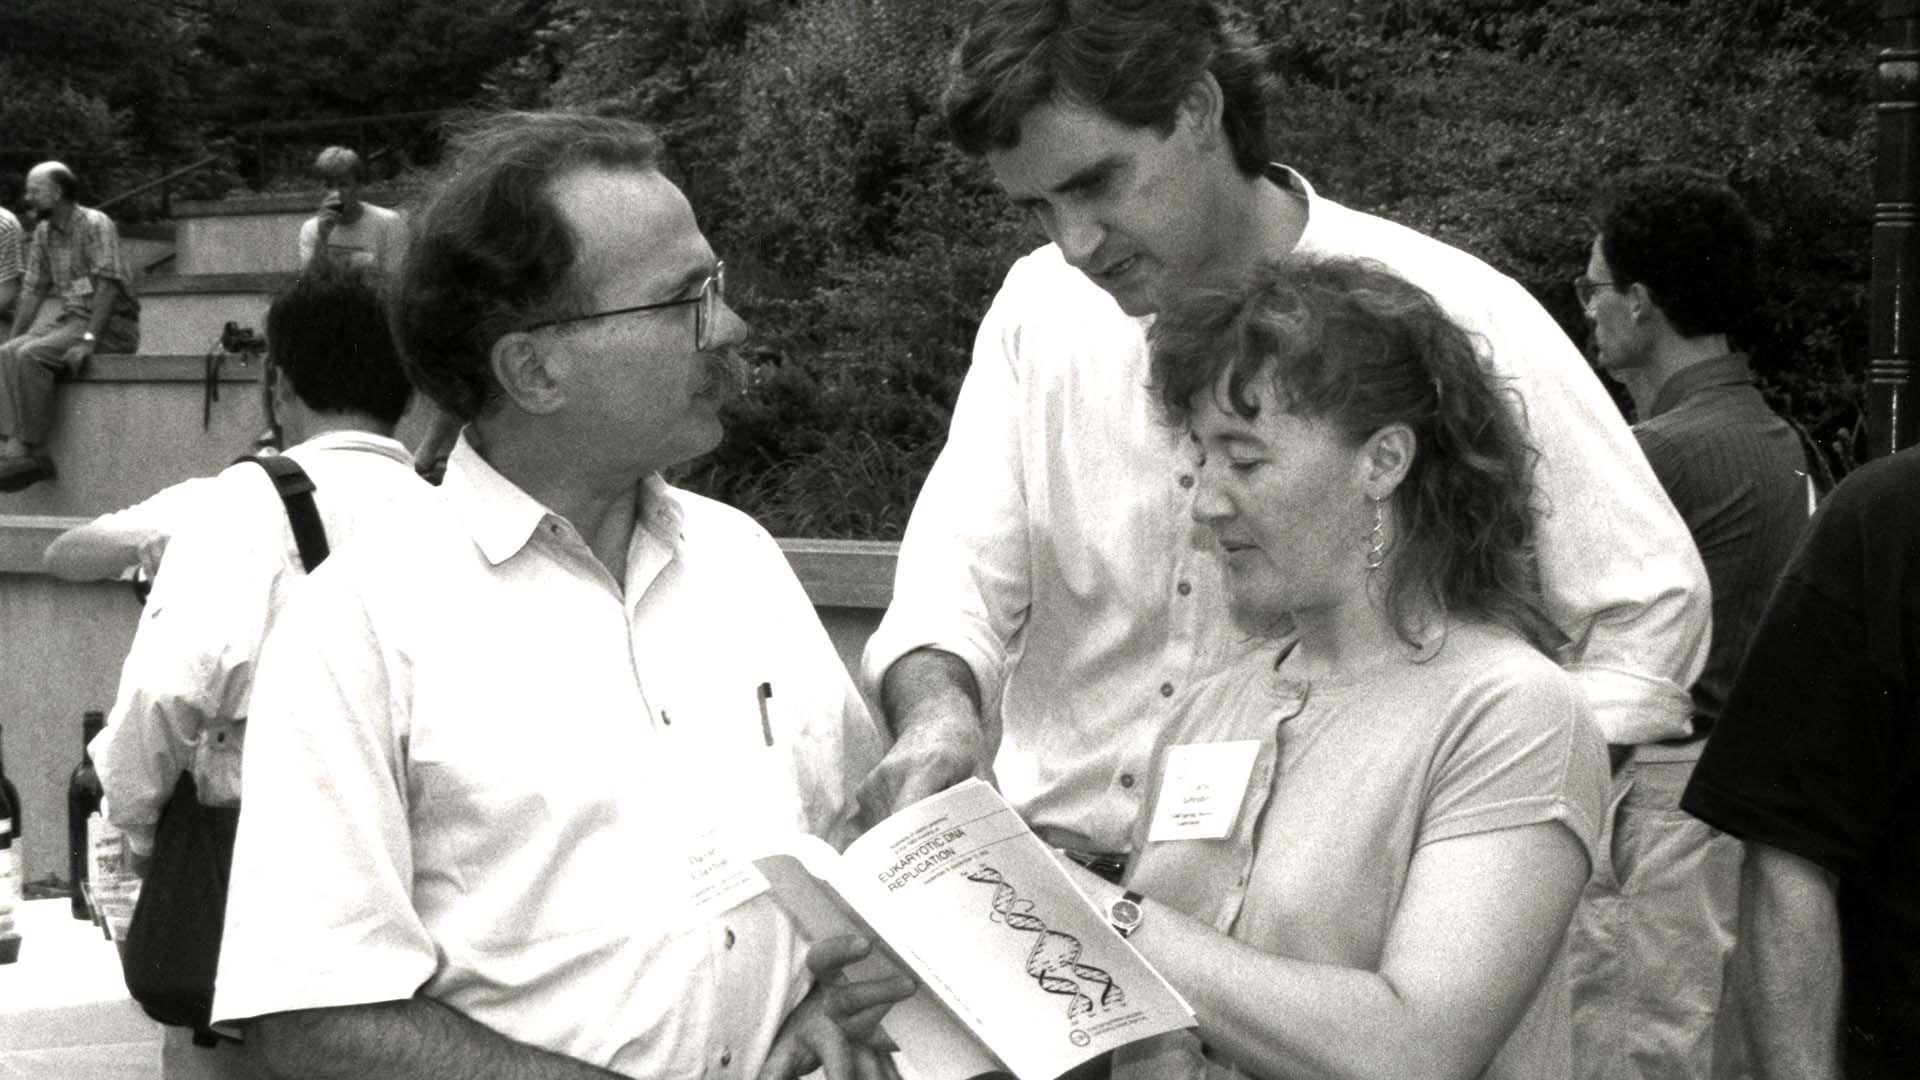 photo of David Clayton, Bruce Stillman, and Carol Greider